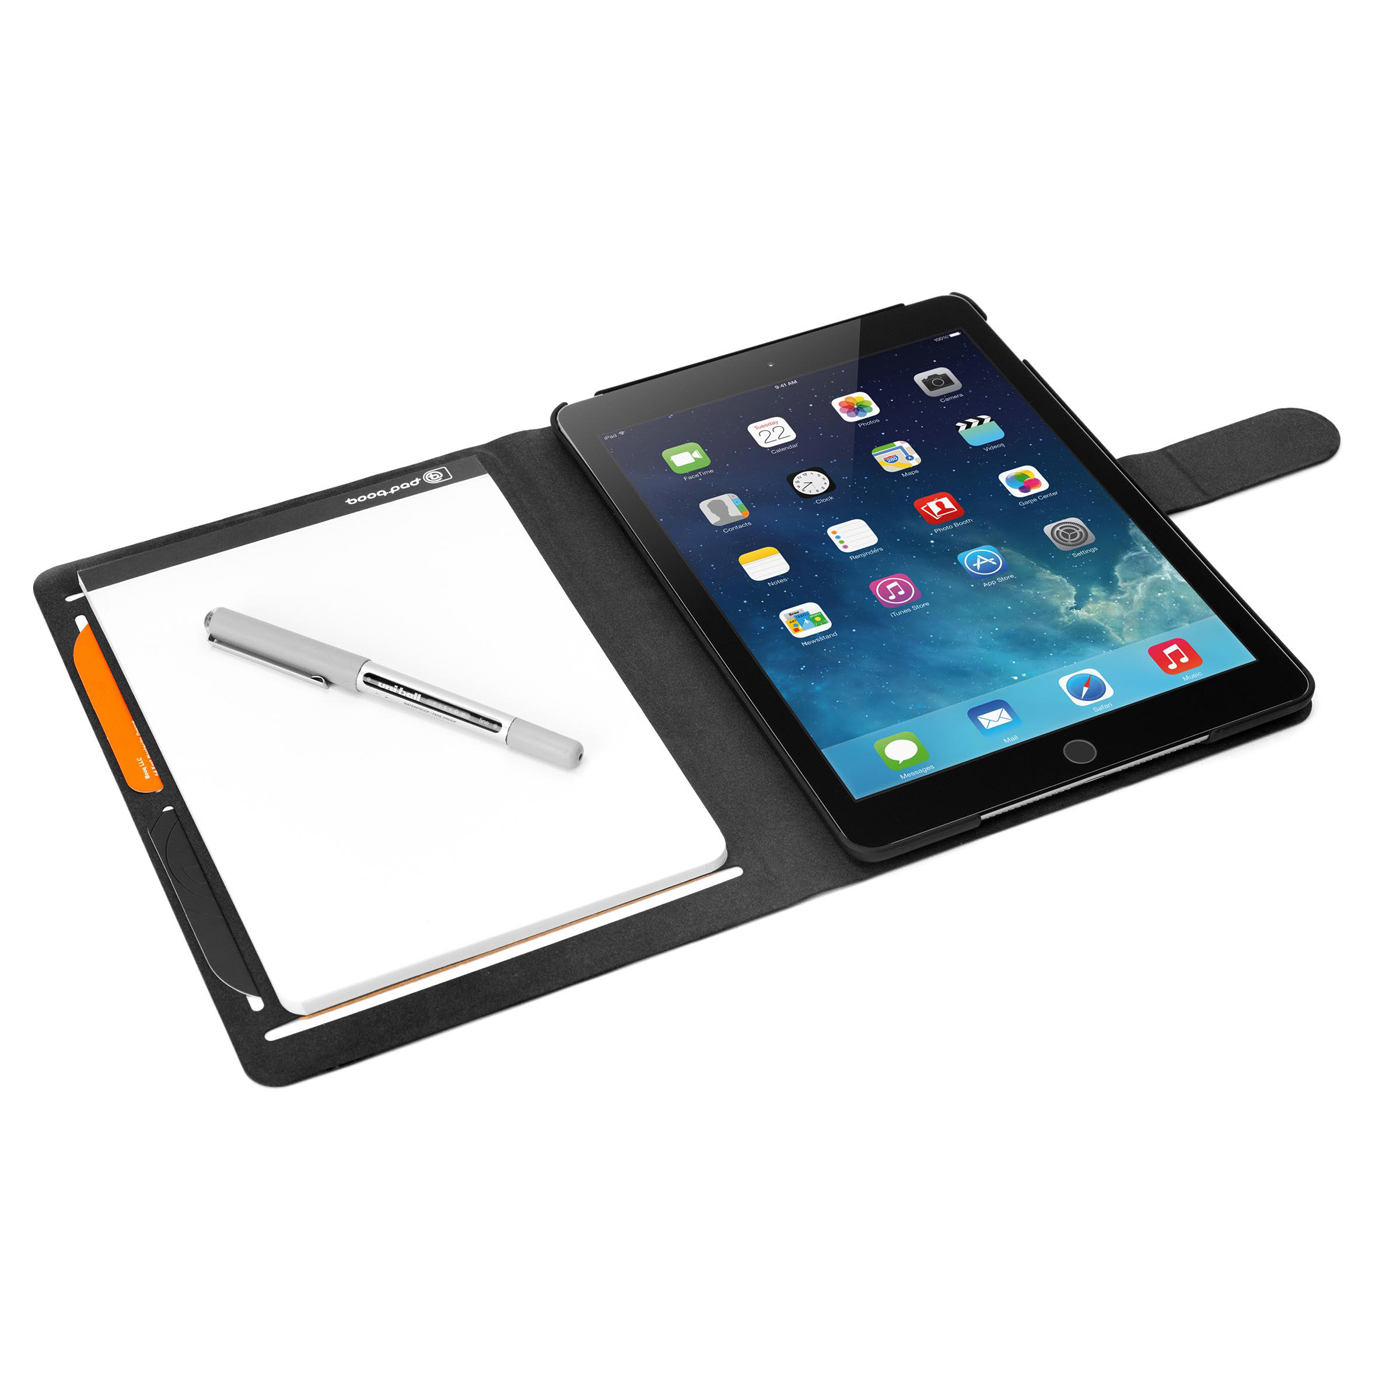 booq booqpad folio case with notepad and polycarbonate case ipad air 2 new 898296004365 ebay. Black Bedroom Furniture Sets. Home Design Ideas